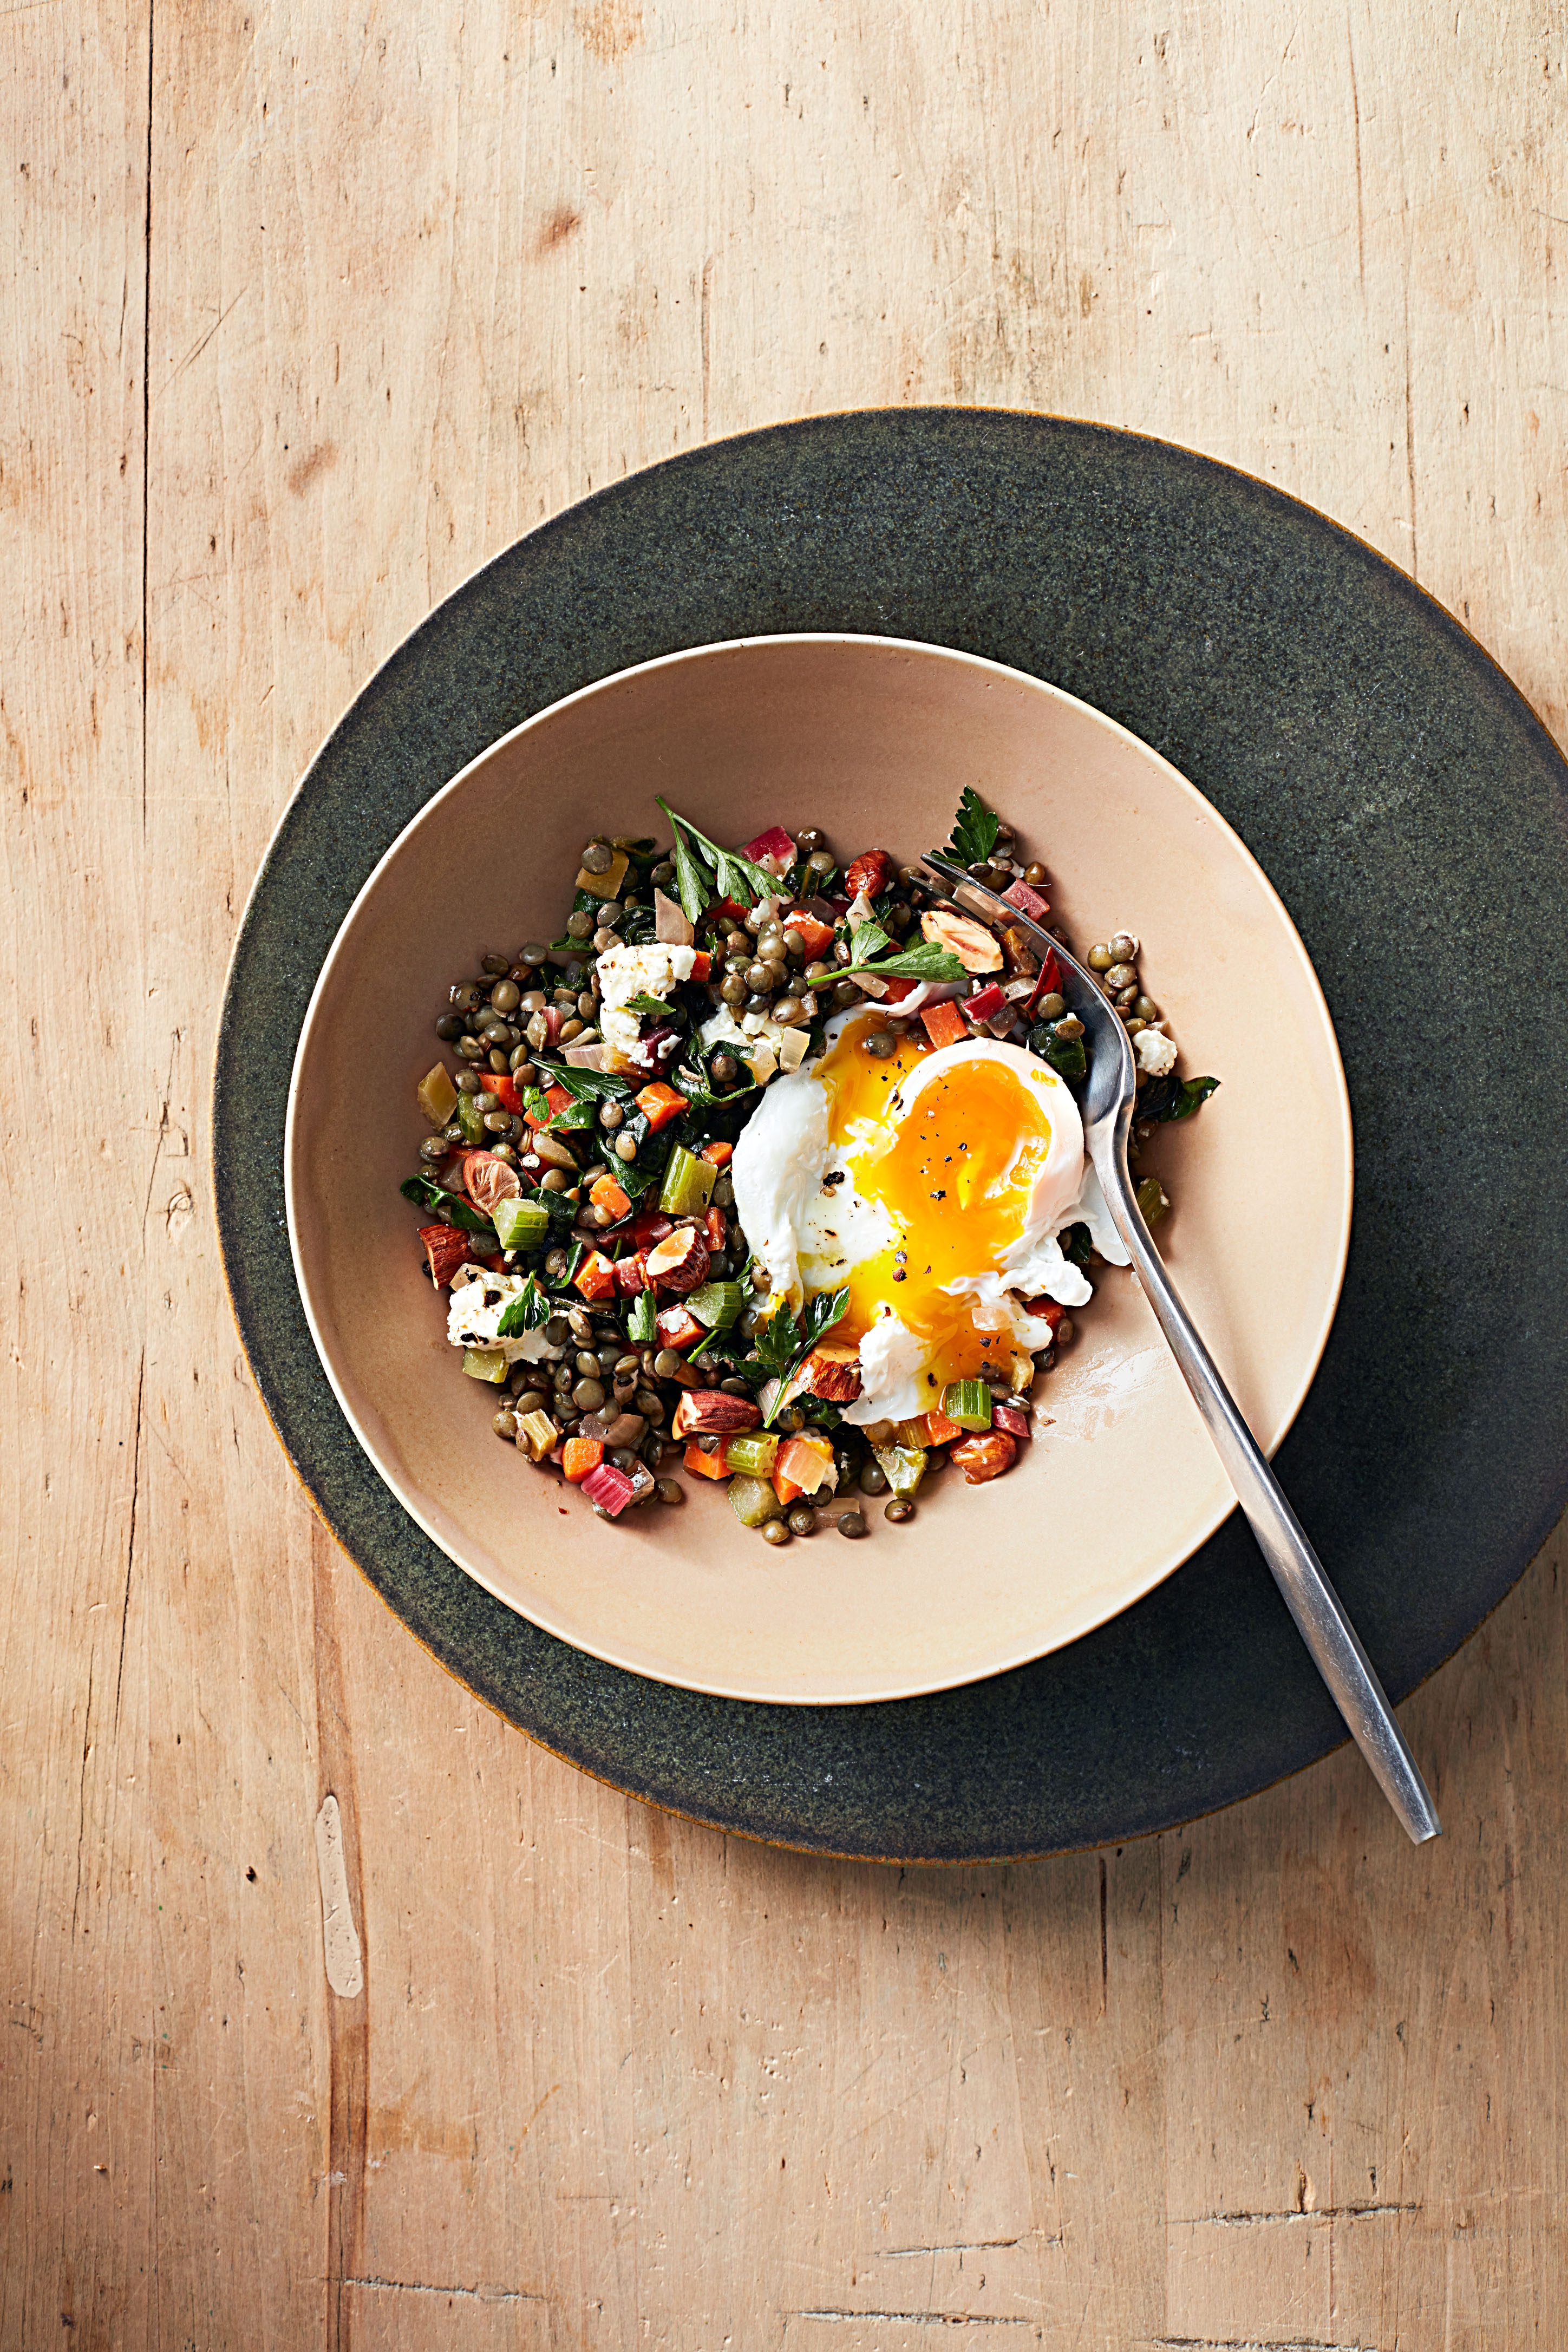 Warm Lentil Salad with Poached Eggs